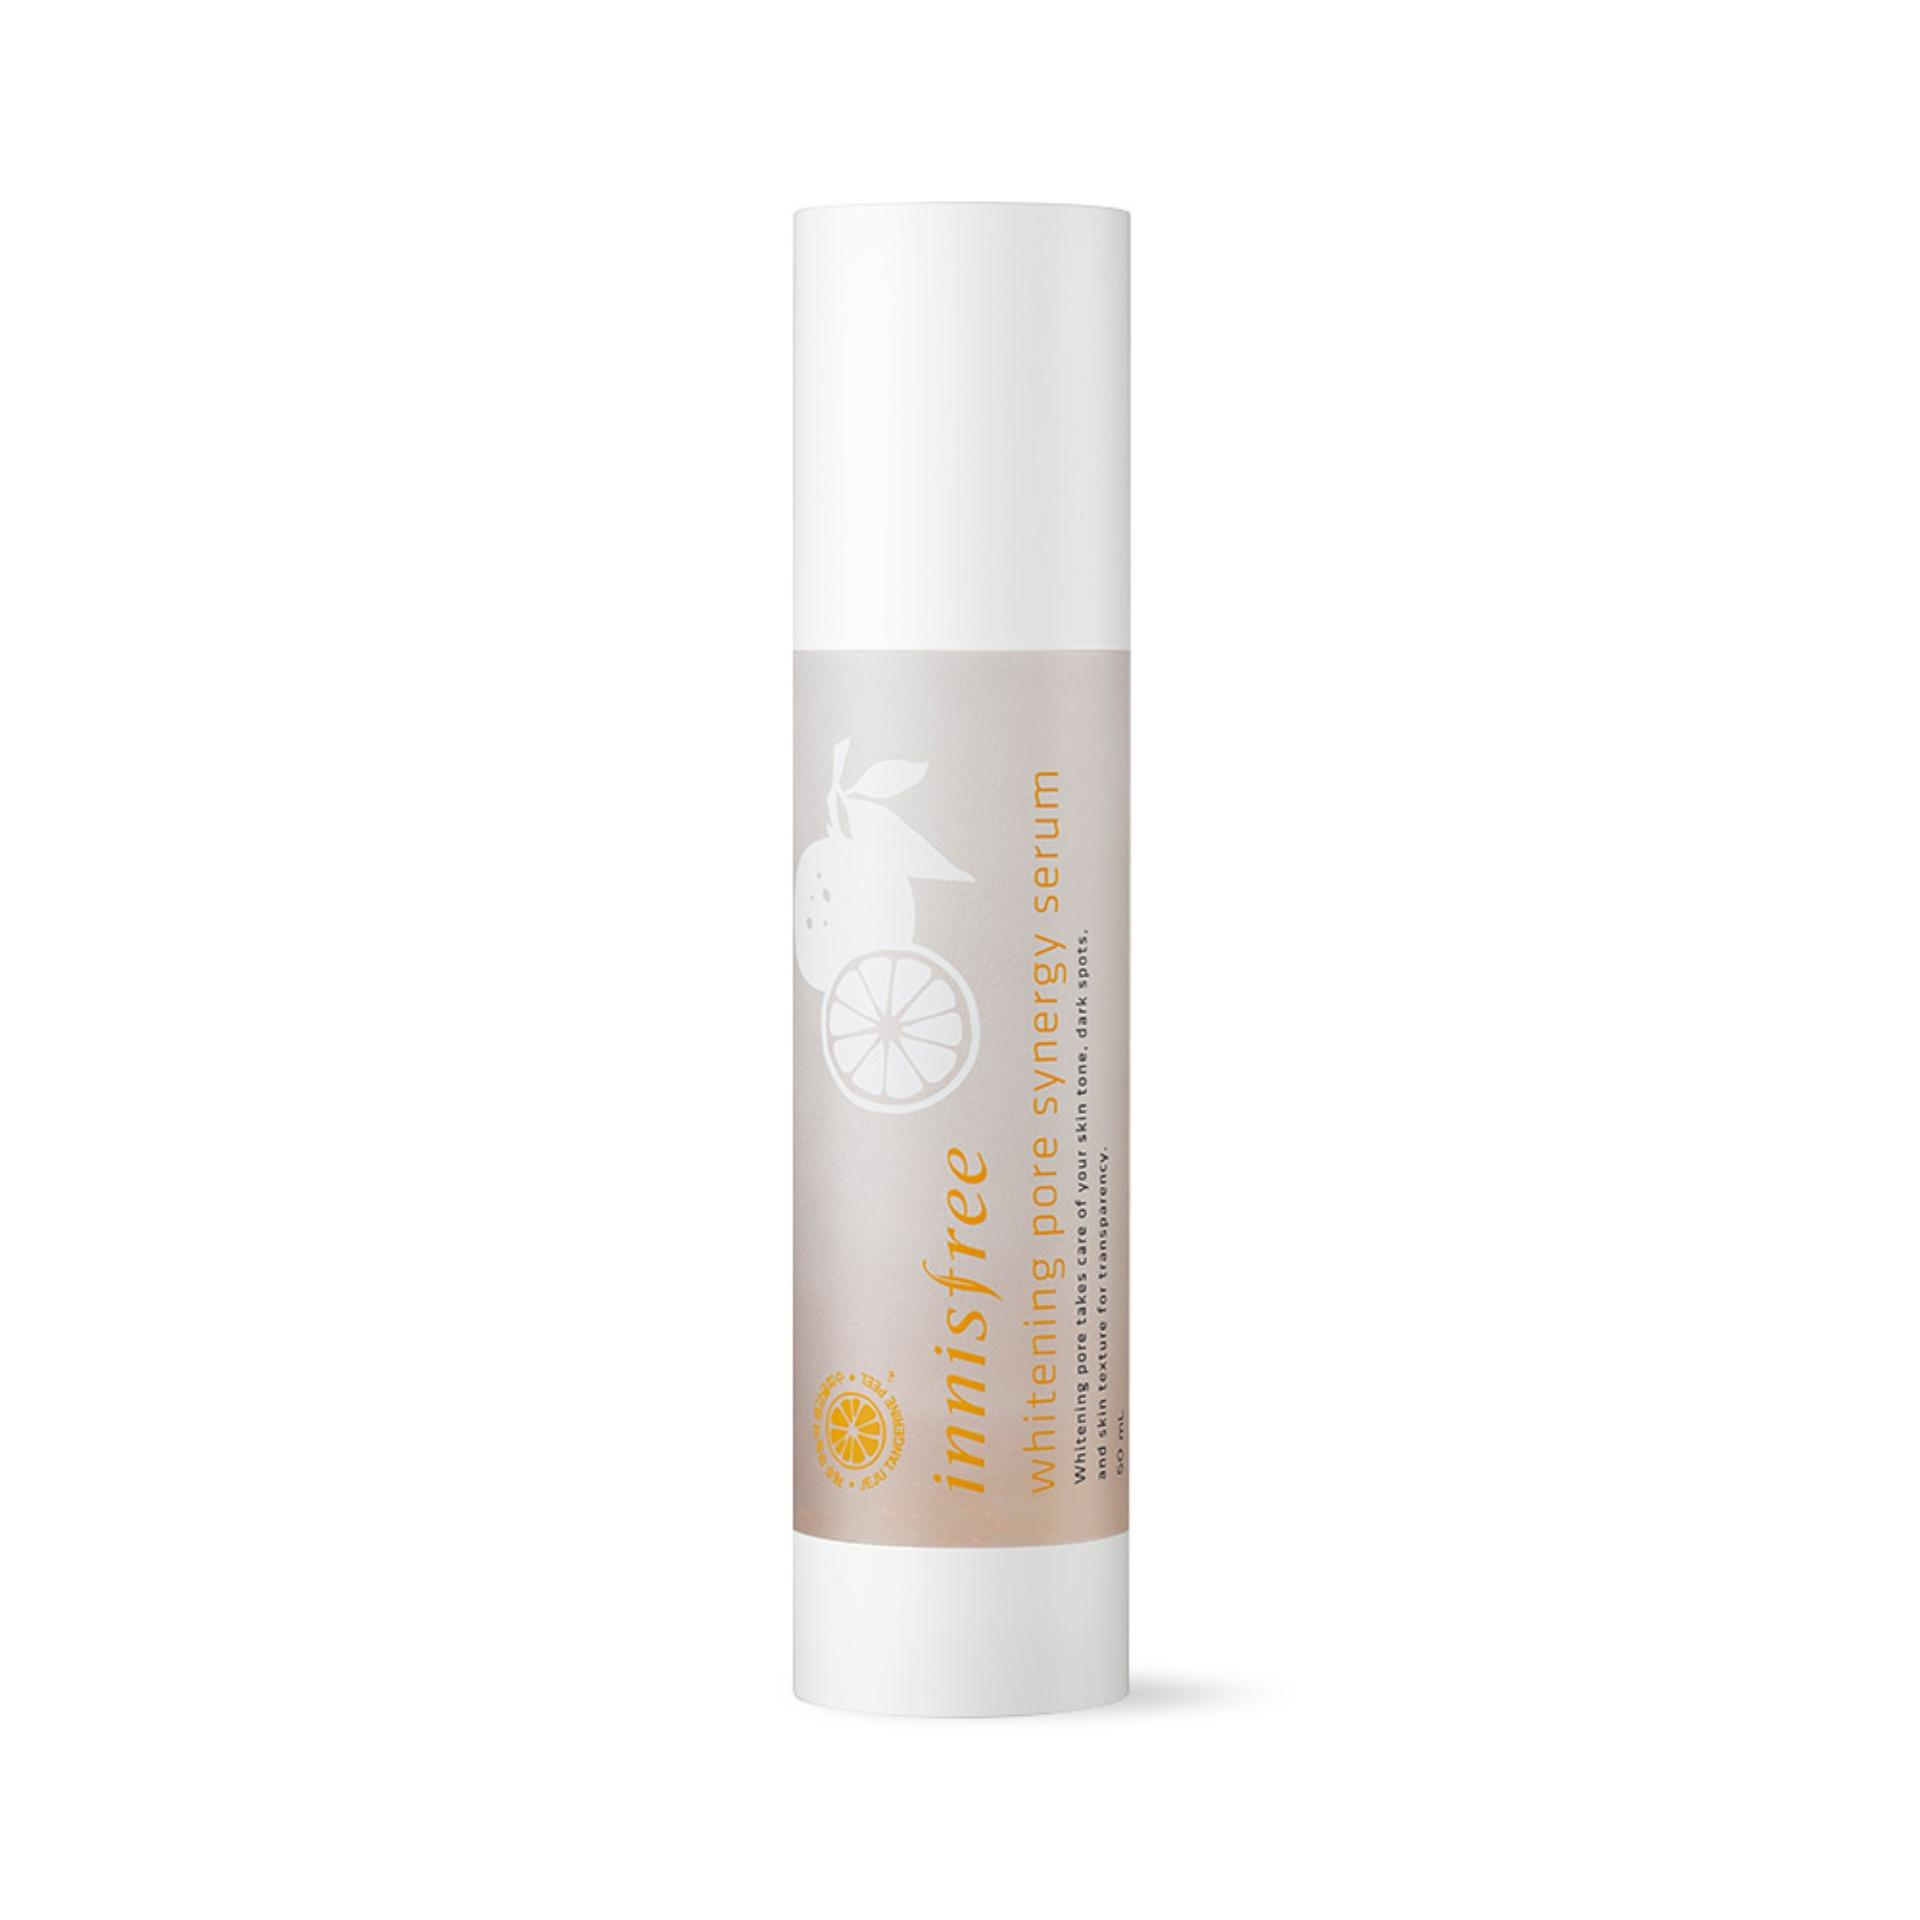 New Innisfree Whitening Pore Synergy Serum 50Ml